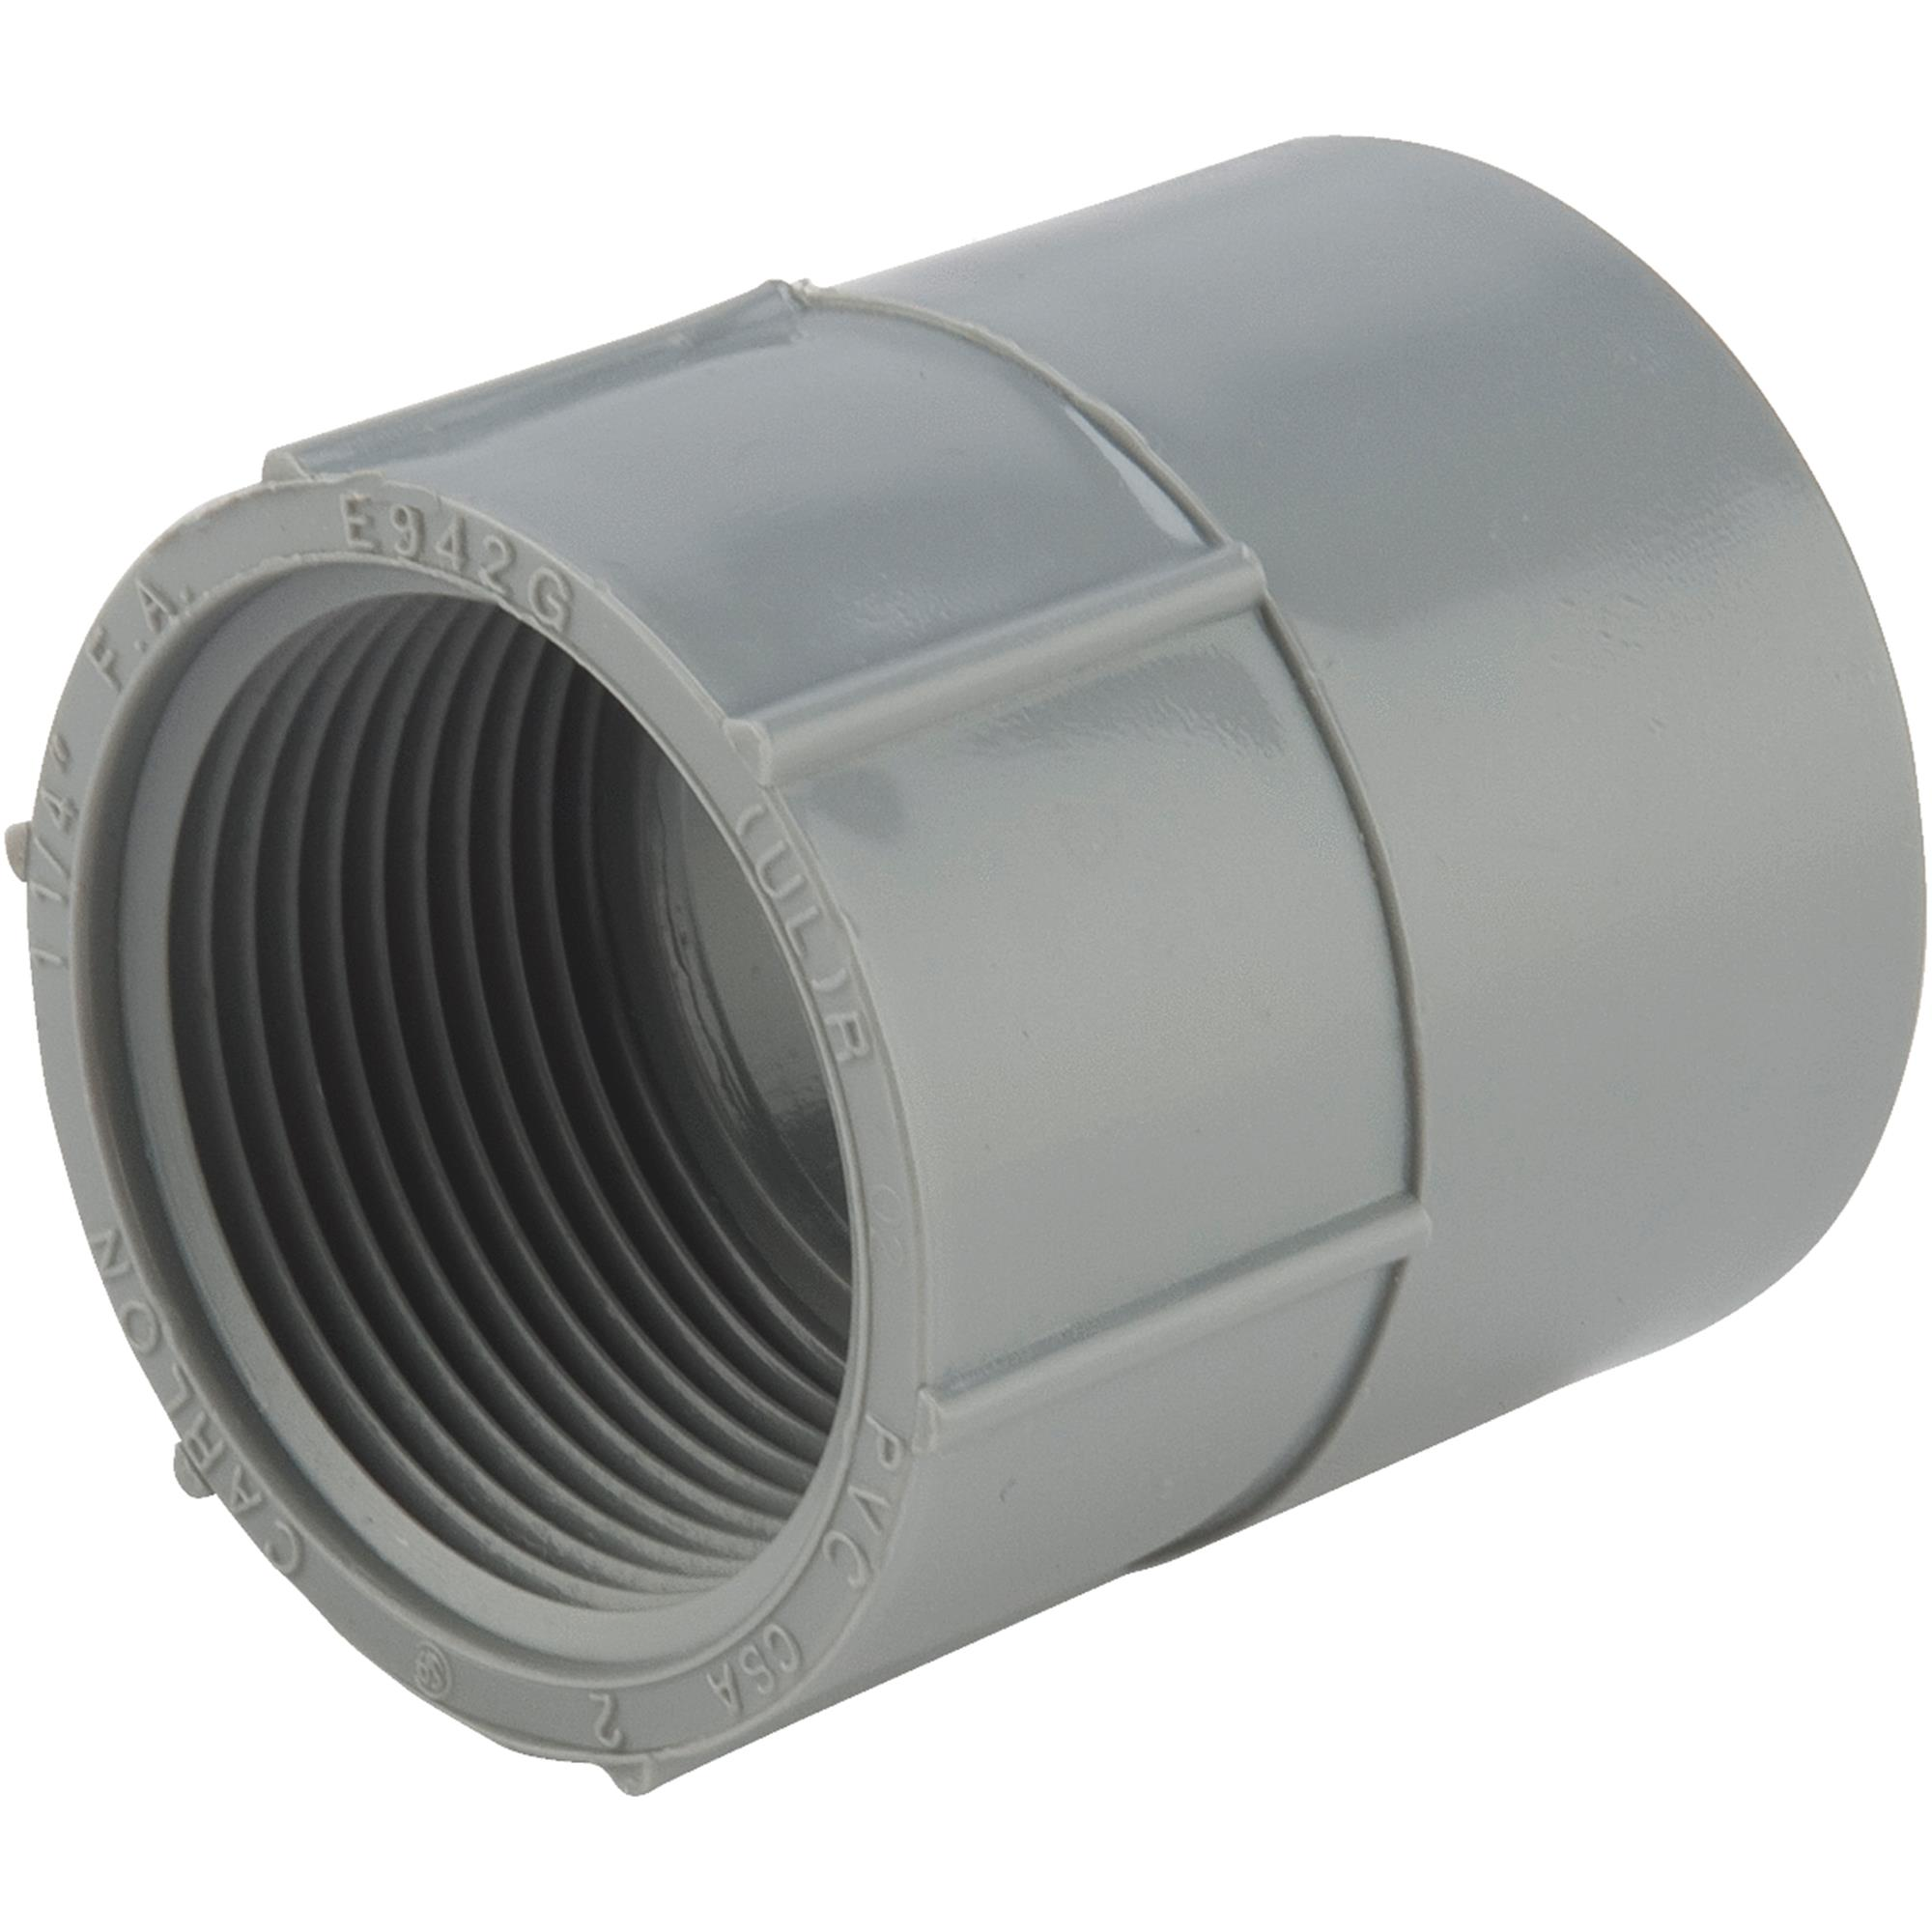 Thomas /& Betts CK 54813 2-WAY CONNECTOR Pack of 10